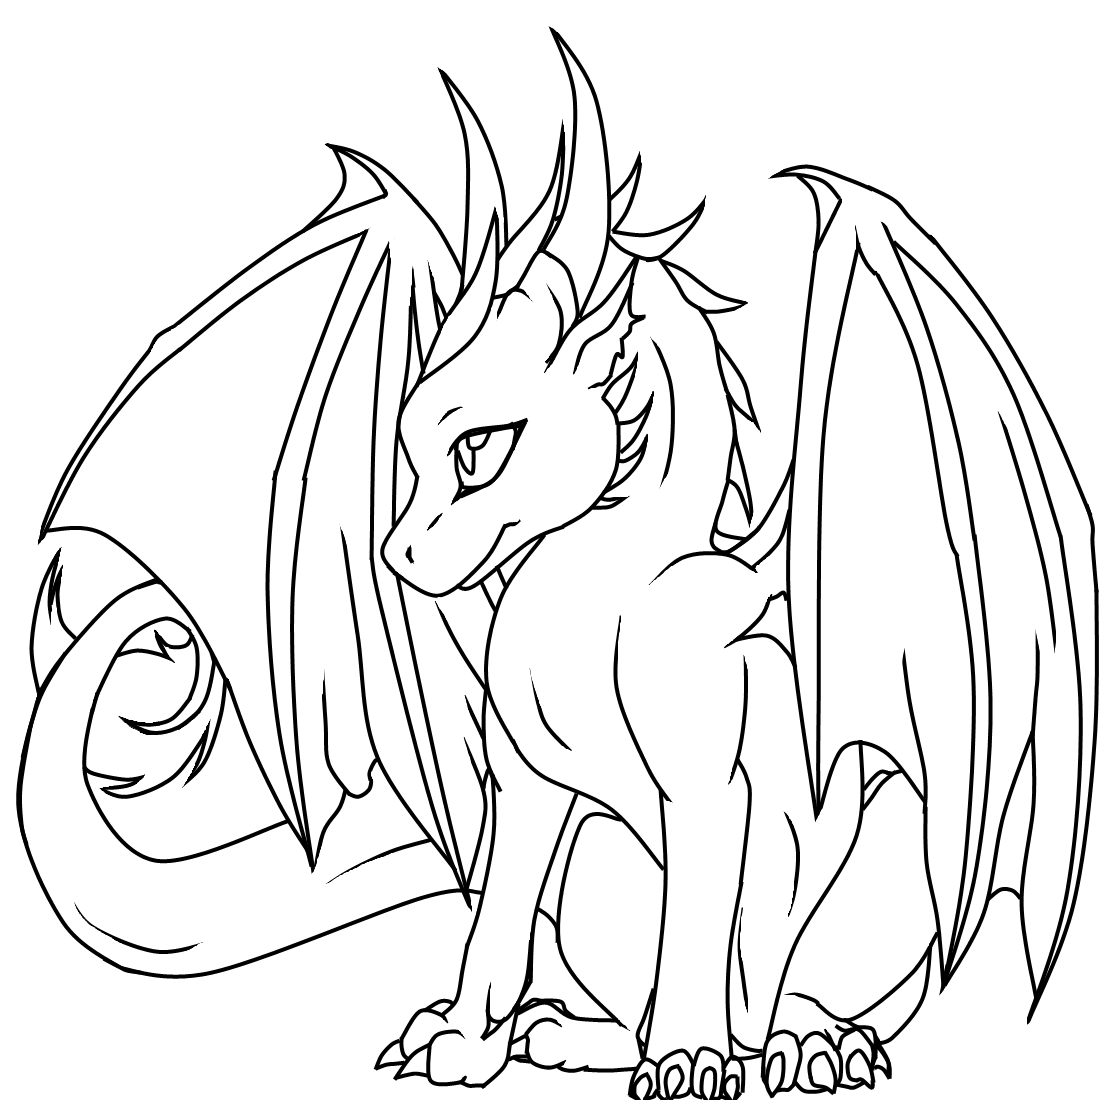 Cool dragon coloring pages for kids and for adults